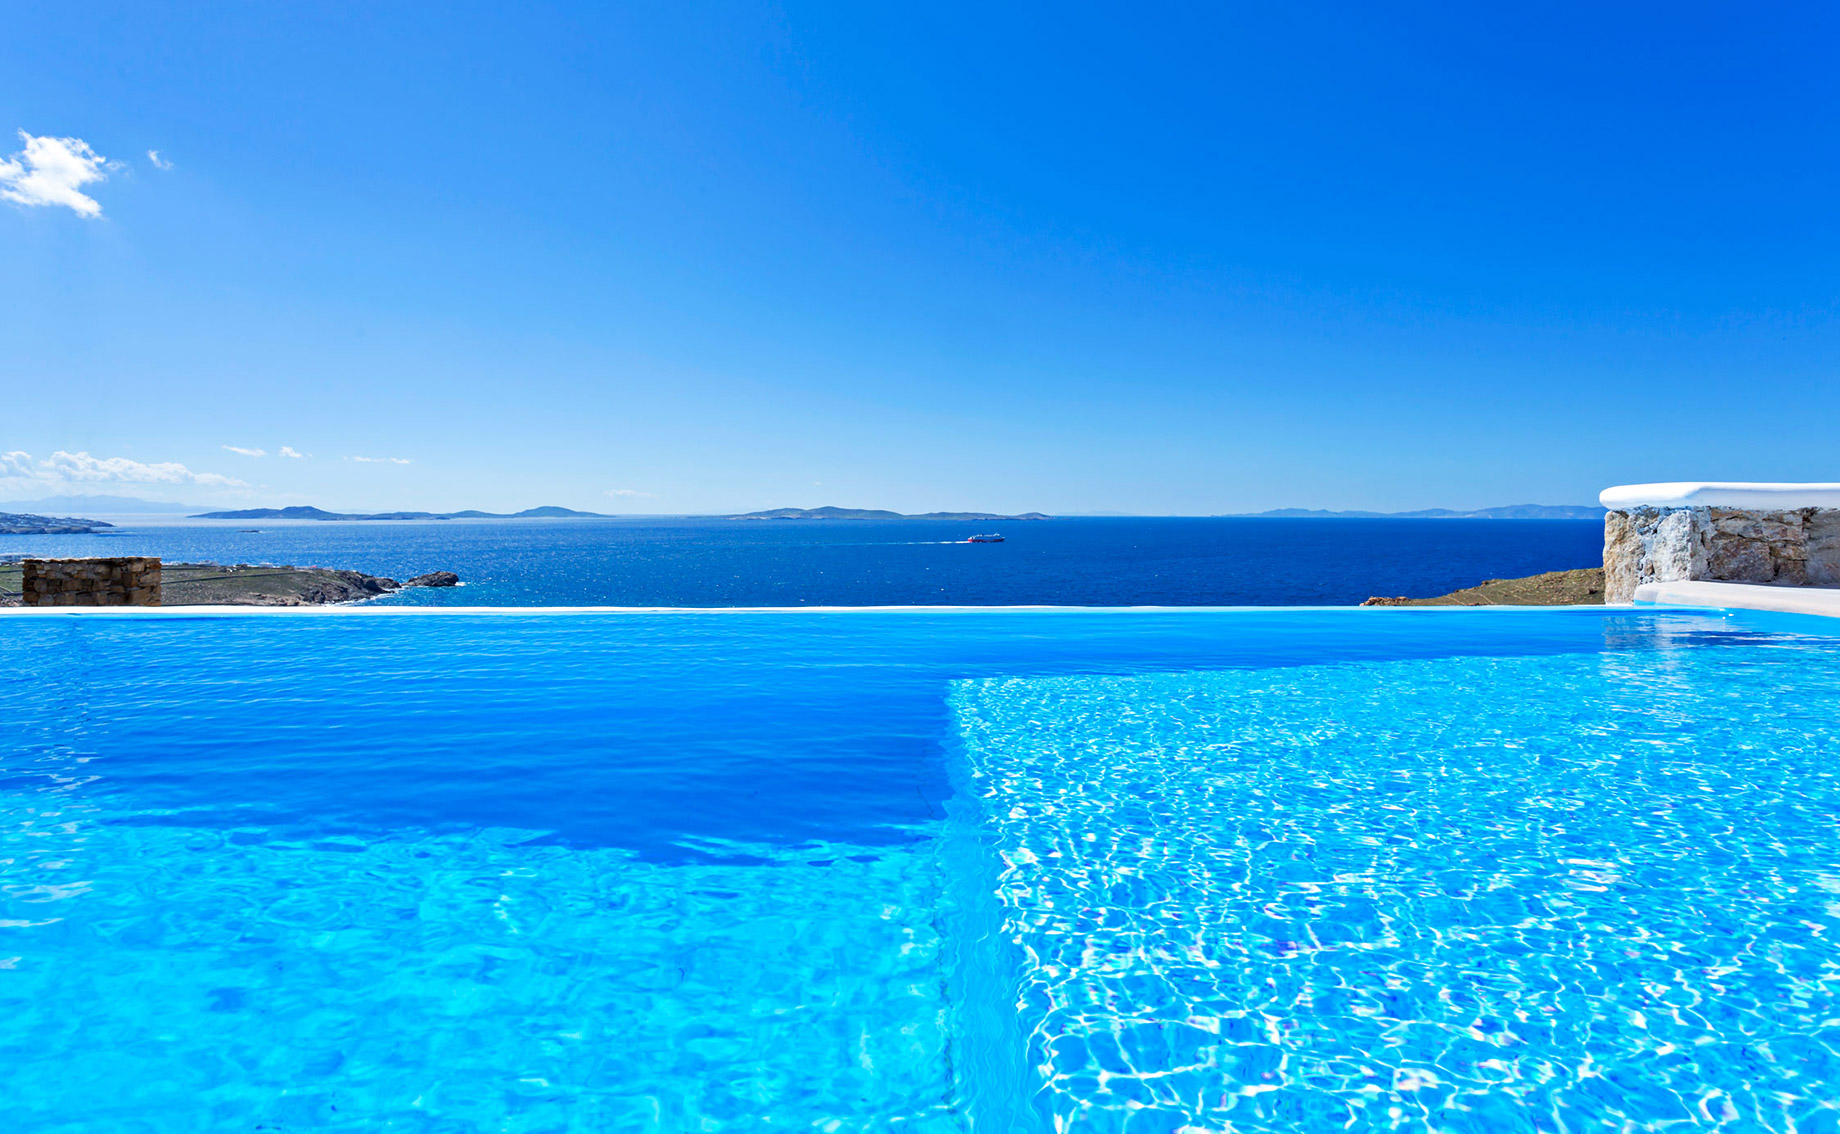 Choulakia - Where To Stay In Mykonos, Greece For The First Time